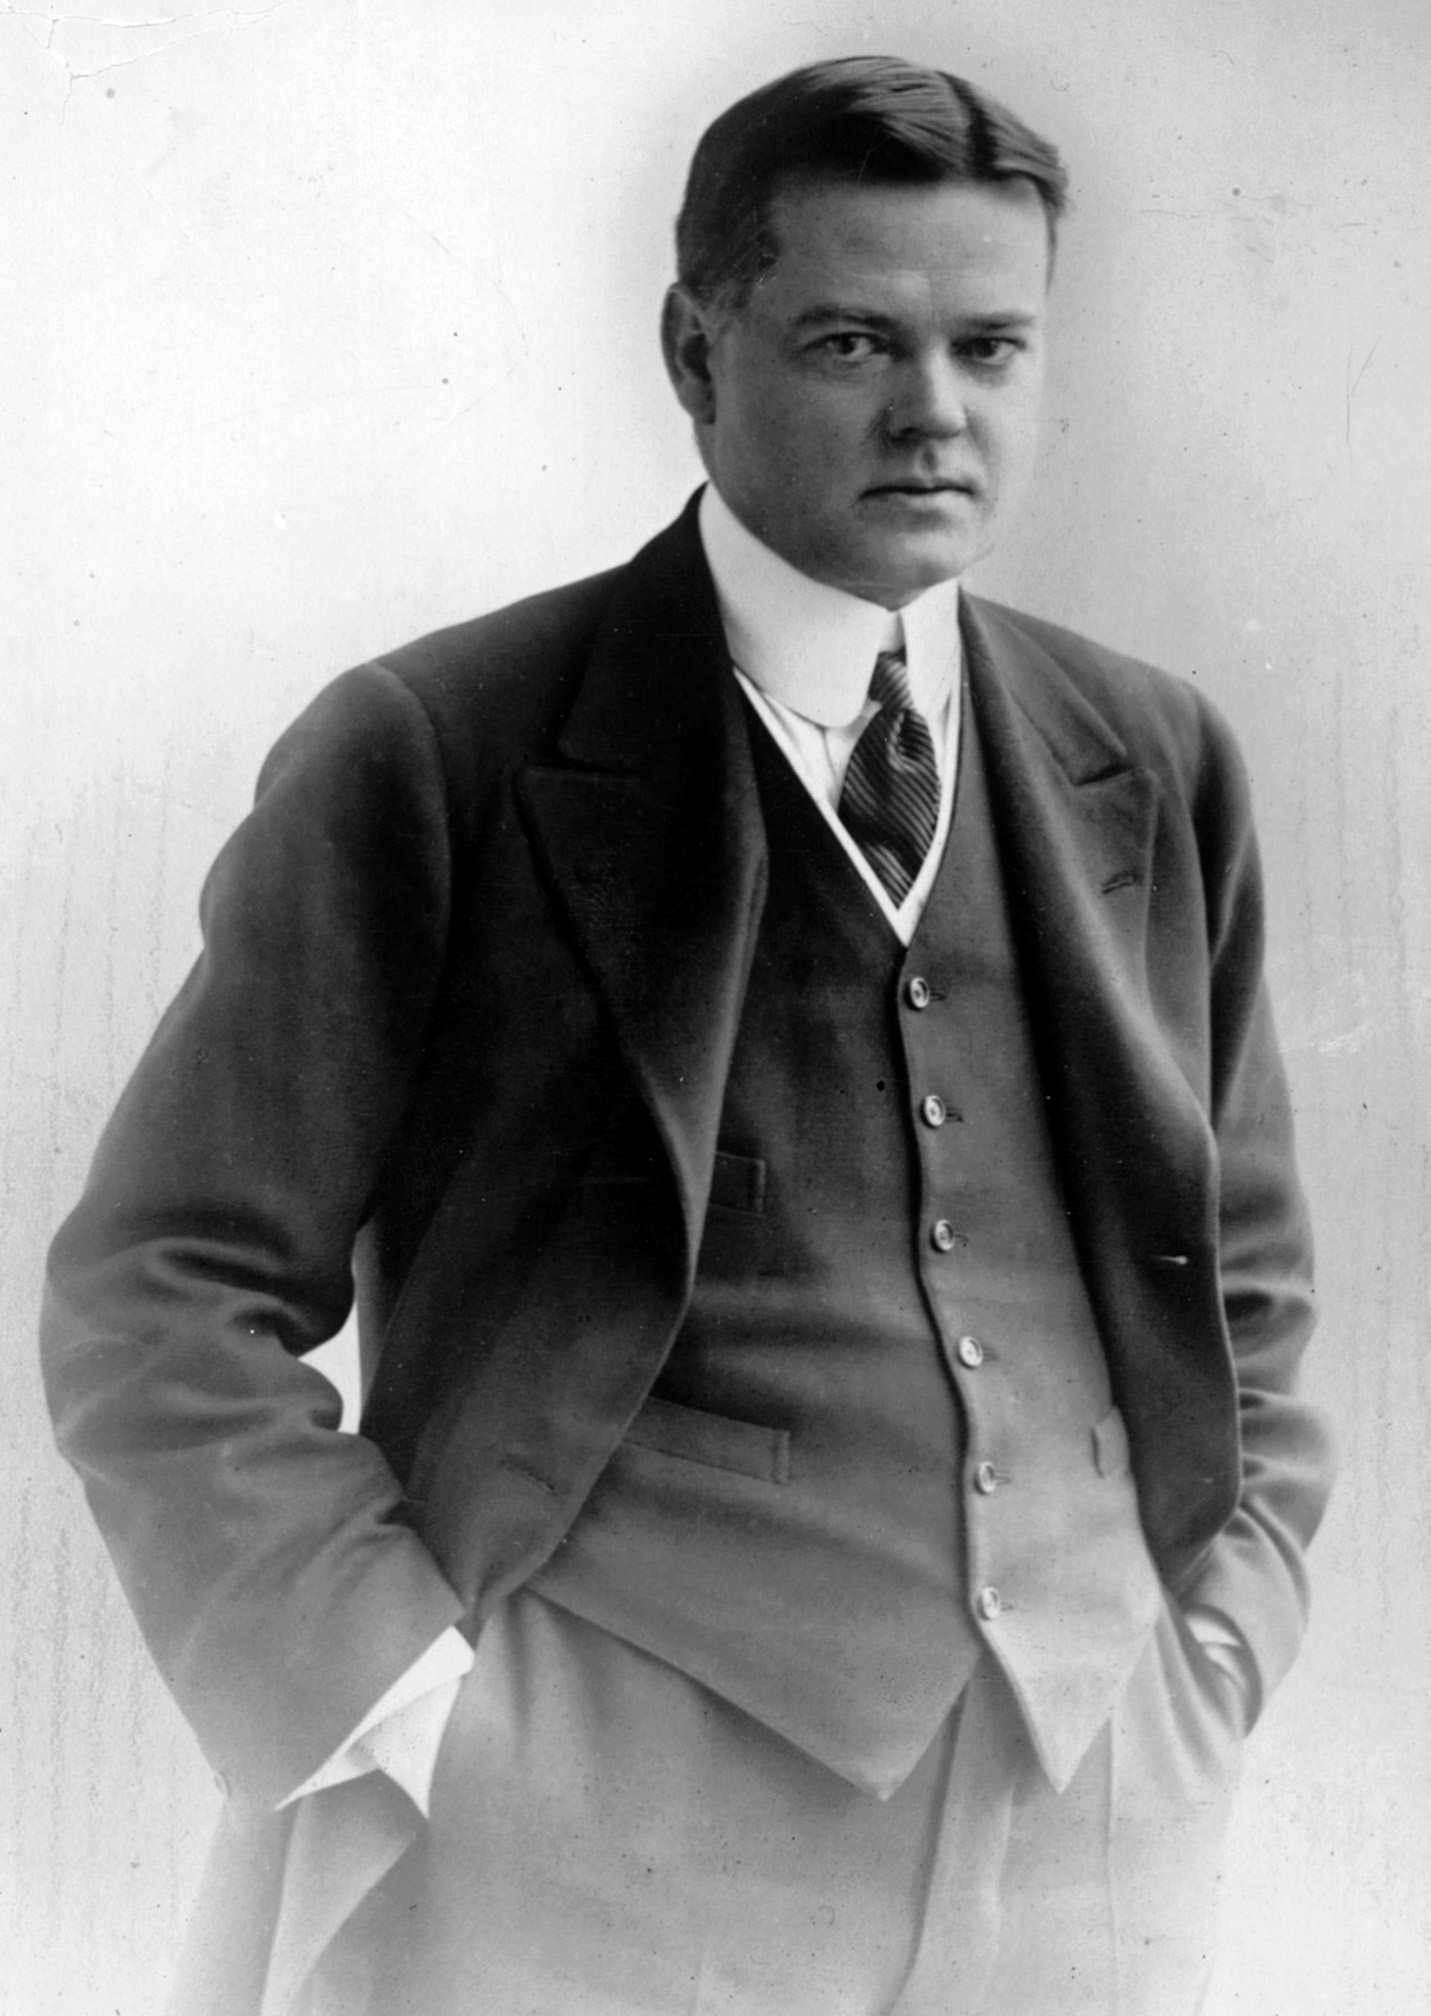 At the start of the war, Herbert Hoover was a 40-year-old mining engineer who was a no-nonsense, ambitious, get-it-done kind of American. He organized and build the Commission for Relief in Belgium (CRB).